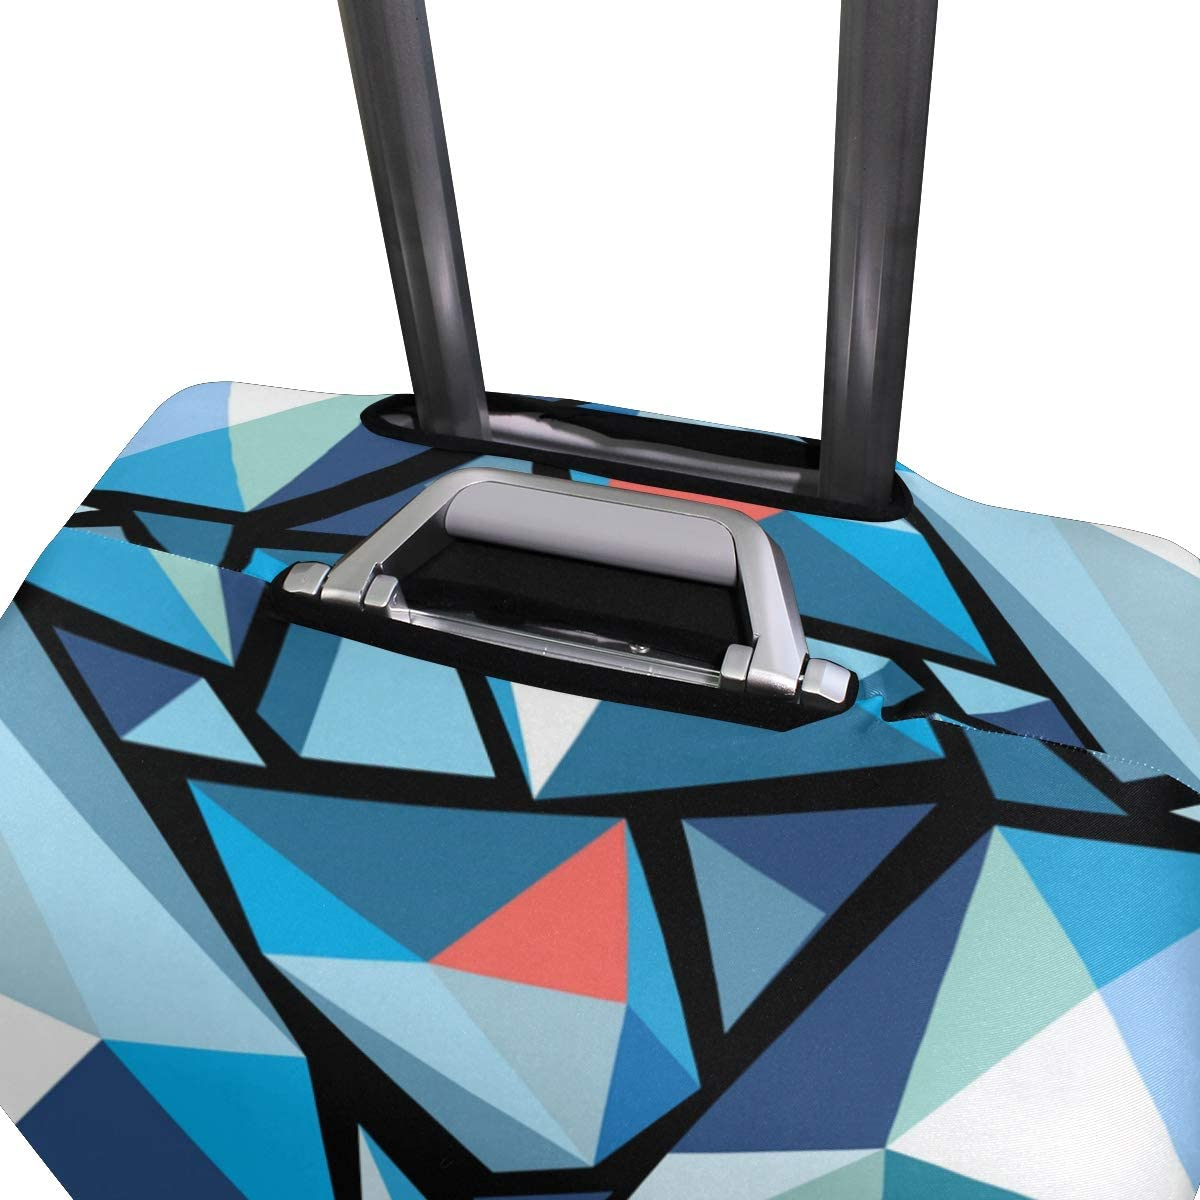 Blue Viper Aesthetic Art Crystal Luggage Protective Cover Suitcase Protector Fits 26-28 Inch Luggage